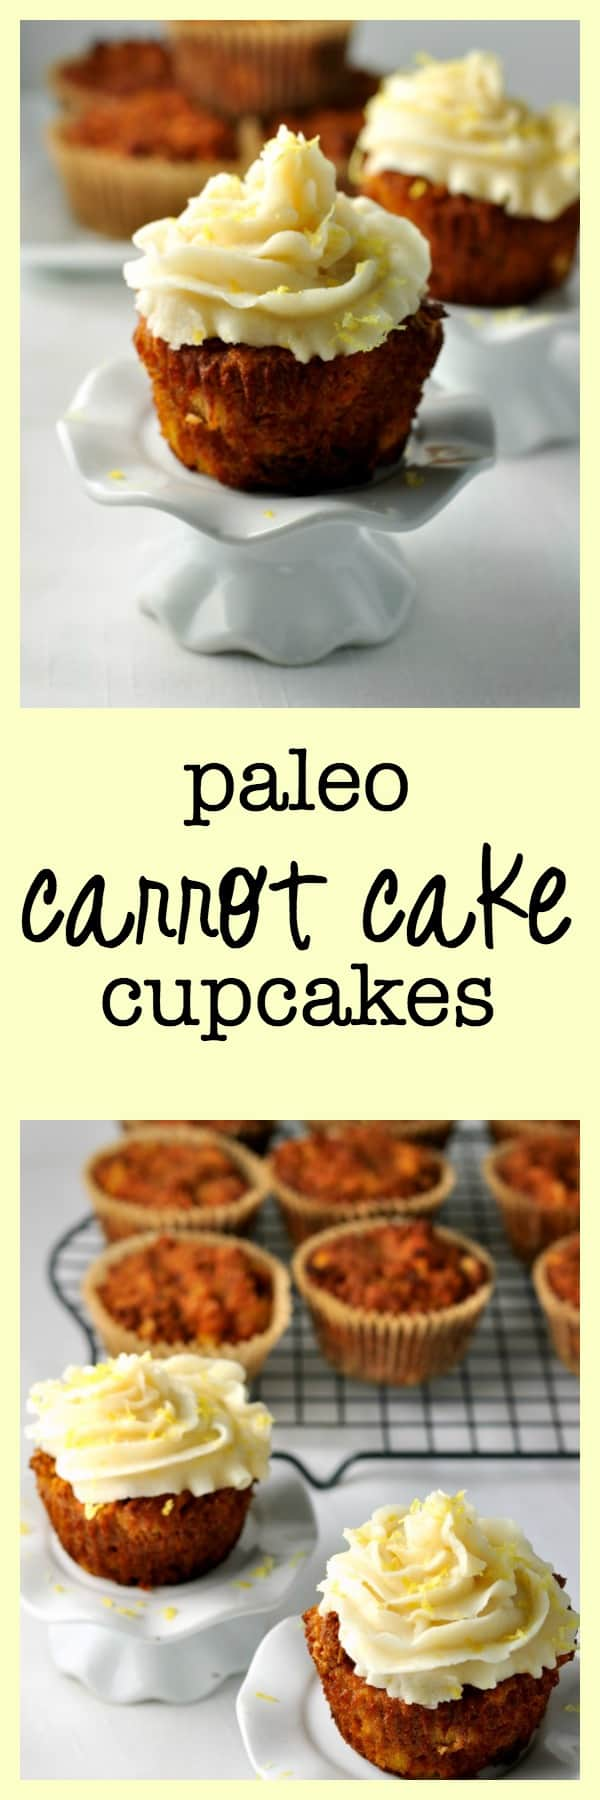 These paleo cupcakes are grain-free, dairy-free and refined sugar free. Seriously good! Just as moist, tender and delicious as a traditional carrot cake!